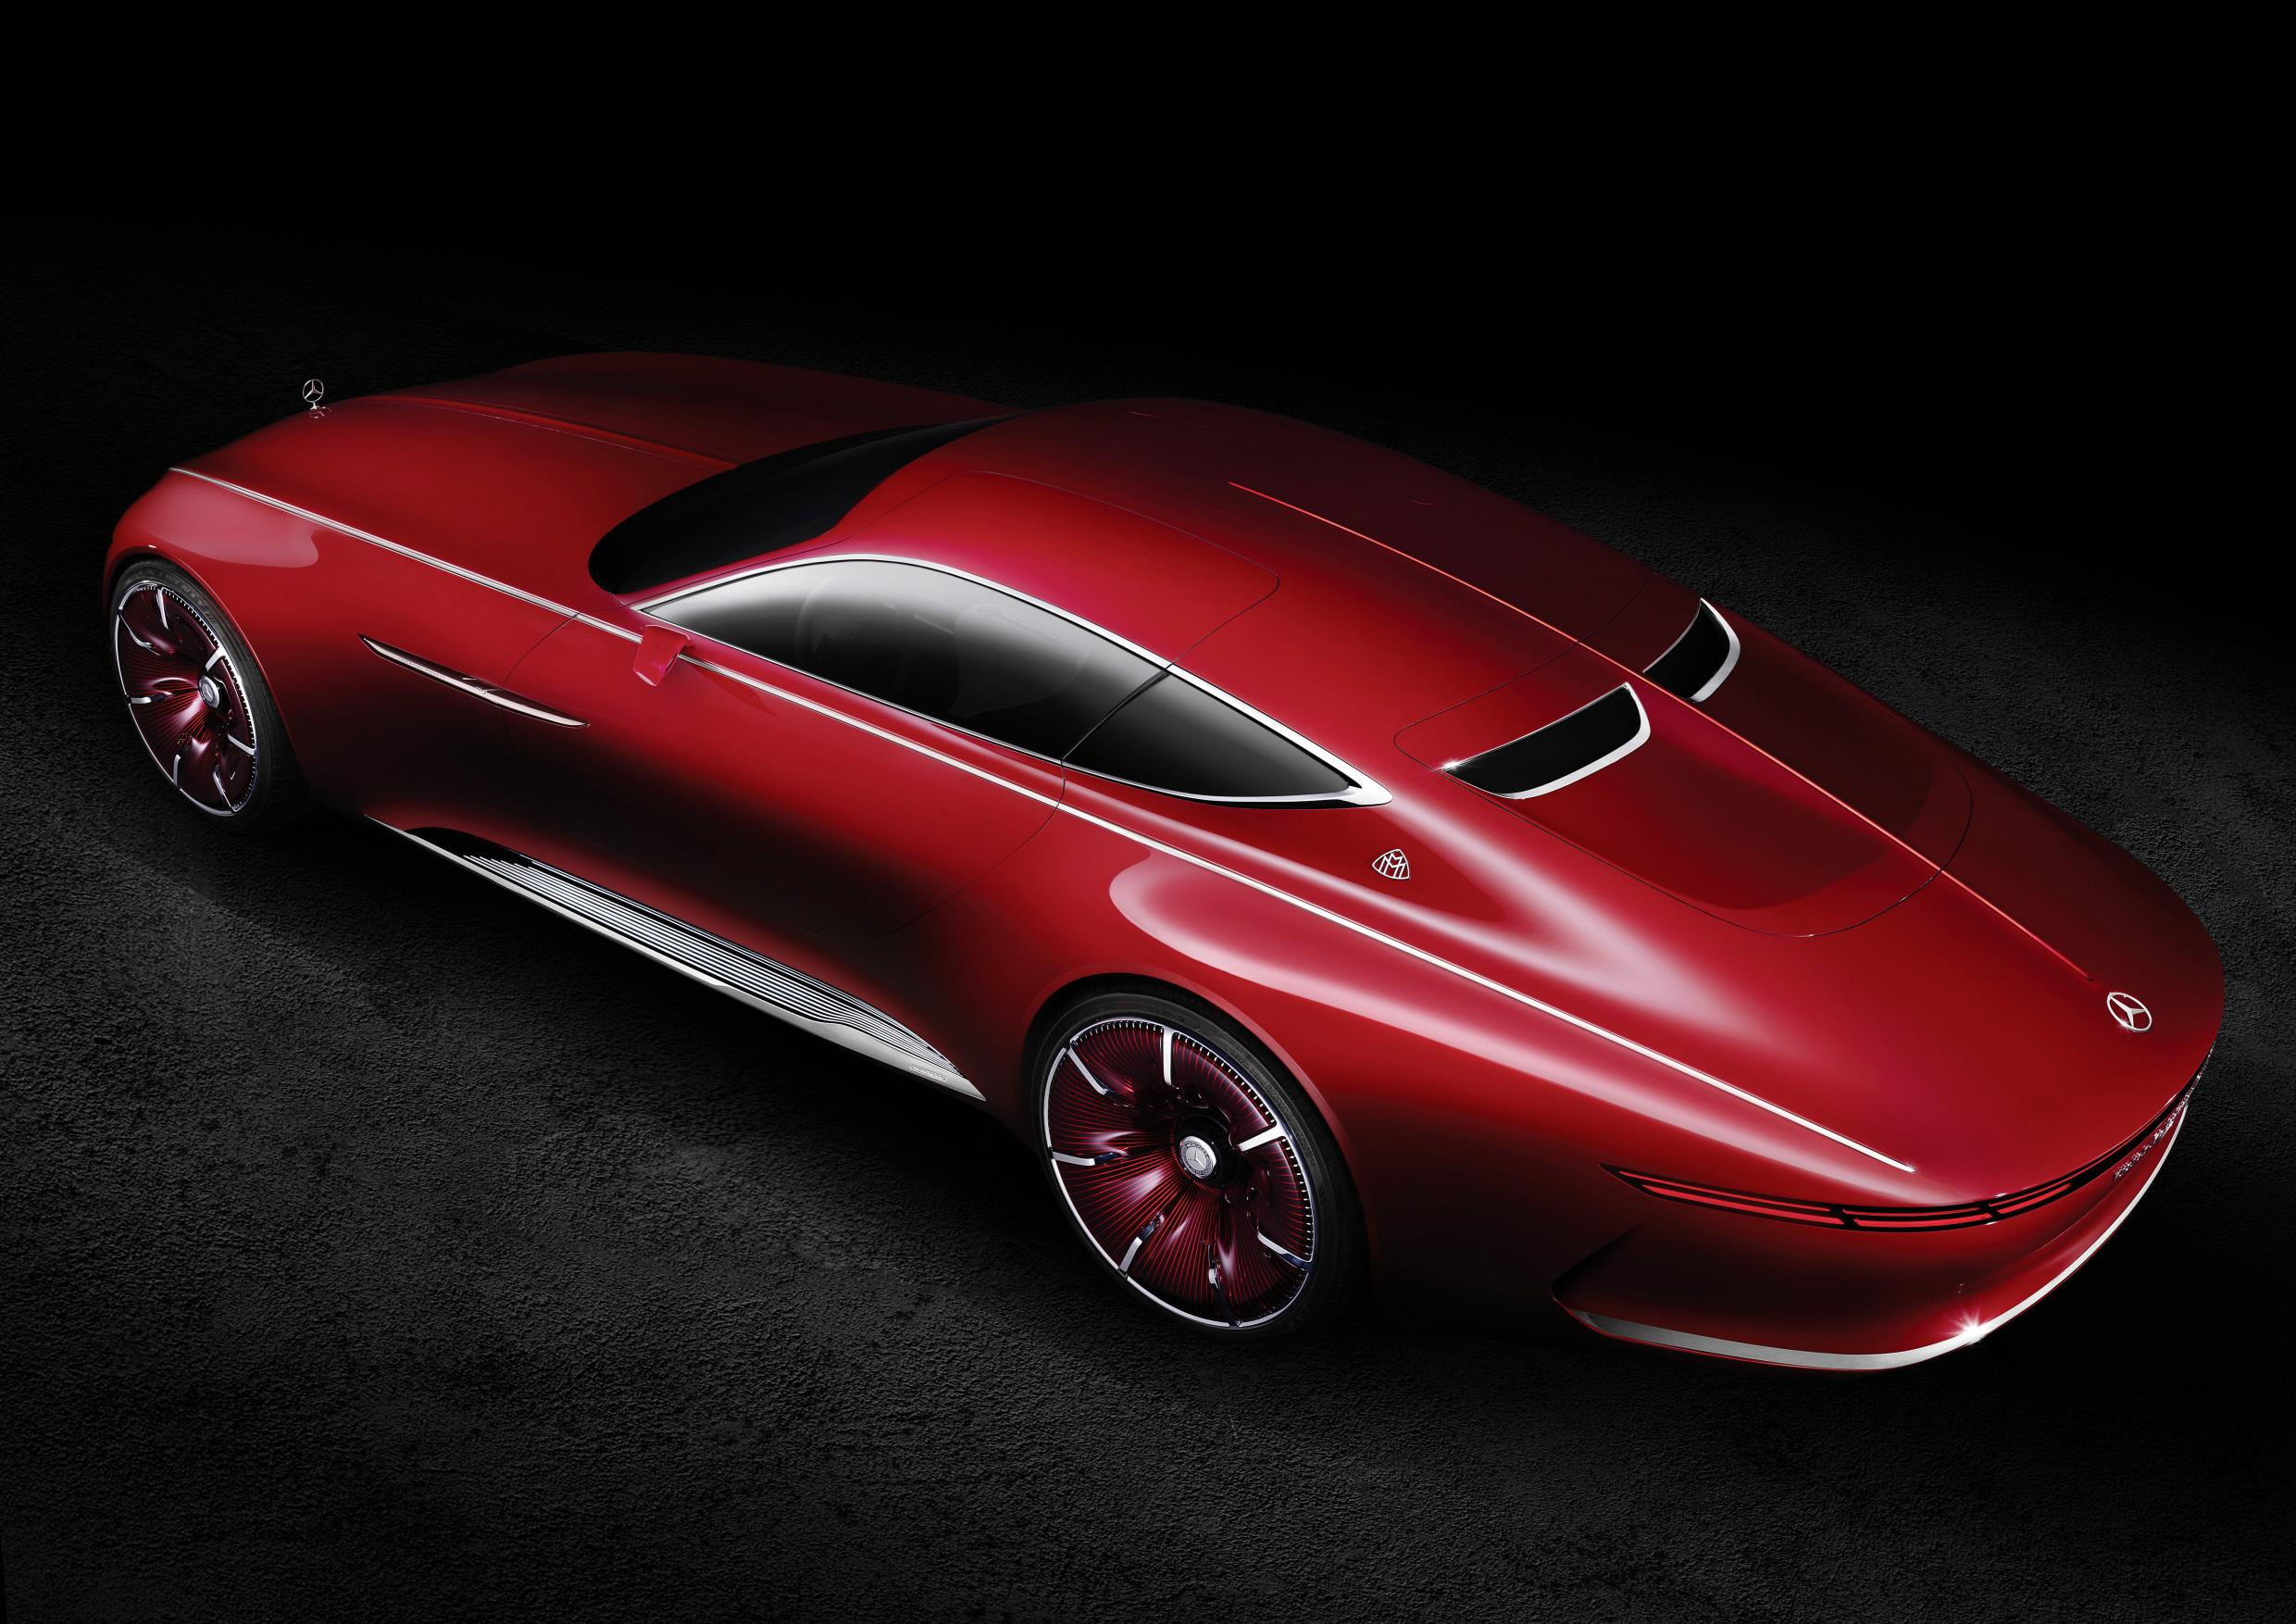 Mercedes Benz E 2017 Price >> Vision Mercedes-Maybach 6 Electric Vehicle Concept Is Out Of This World - autoevolution